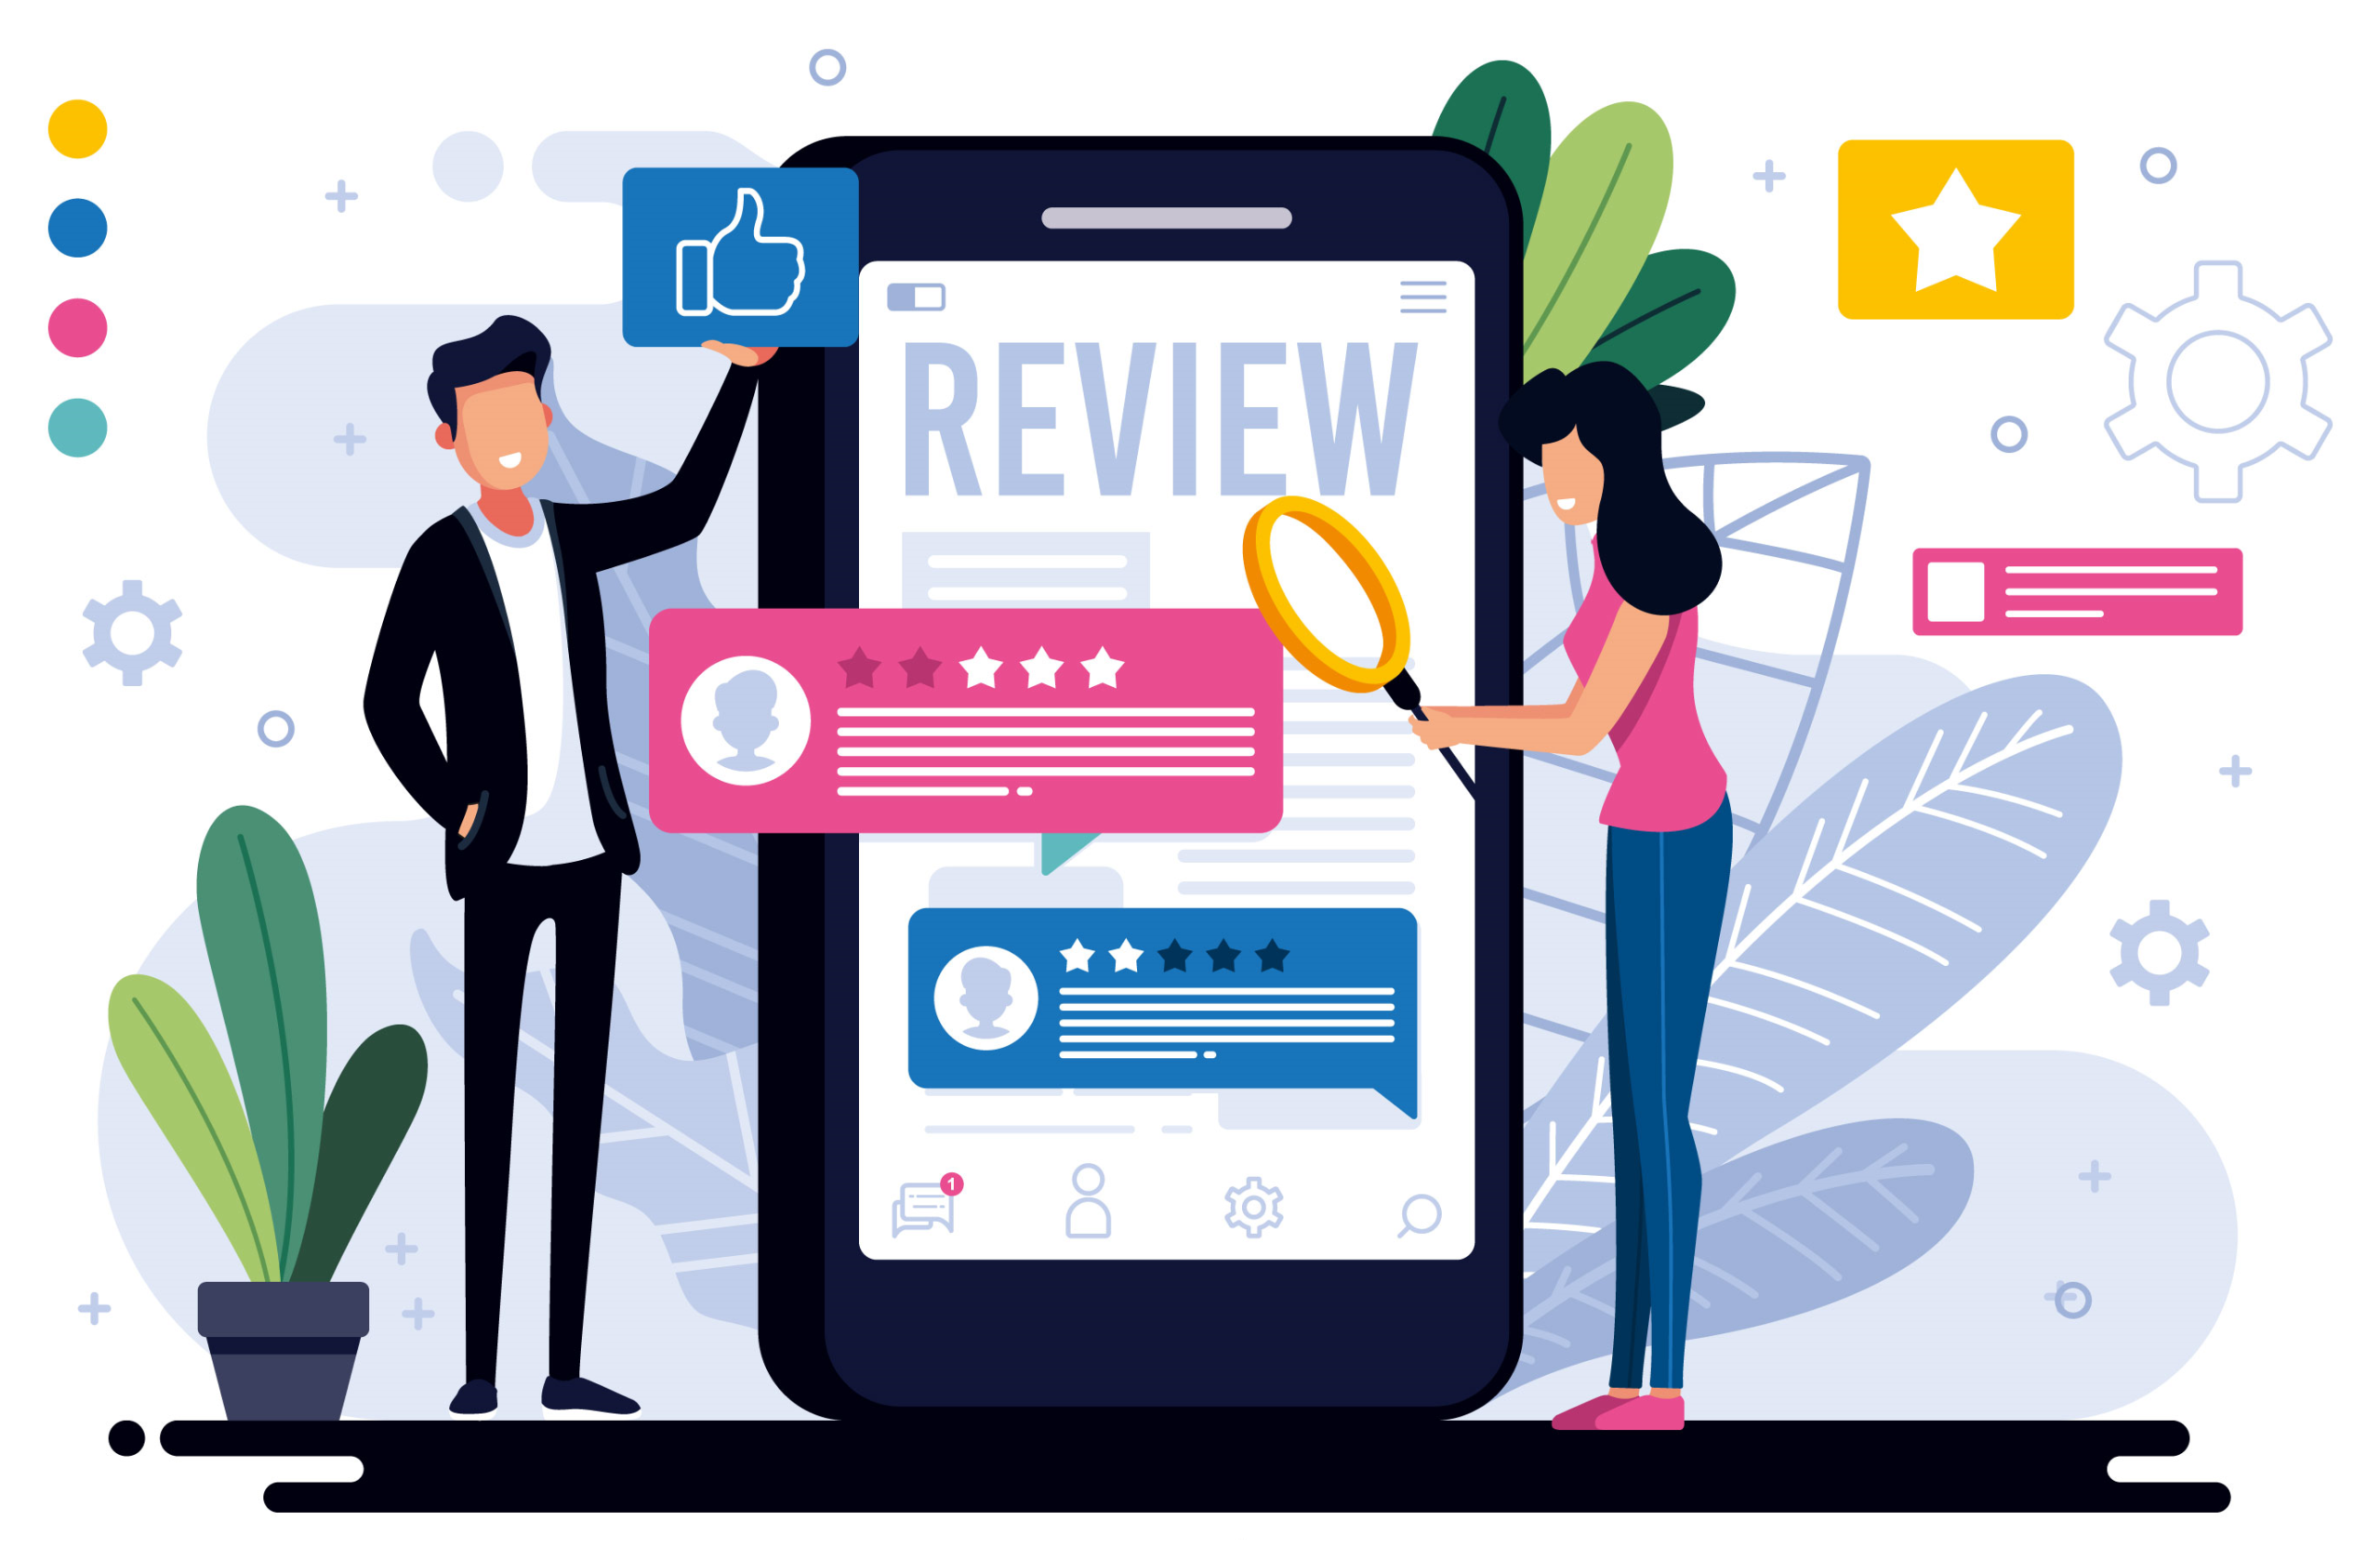 IDENTIFY NEGATIVE REVIEWERS AND PREVENT THE ISSUE BEFORE IT GOES PUBLIC